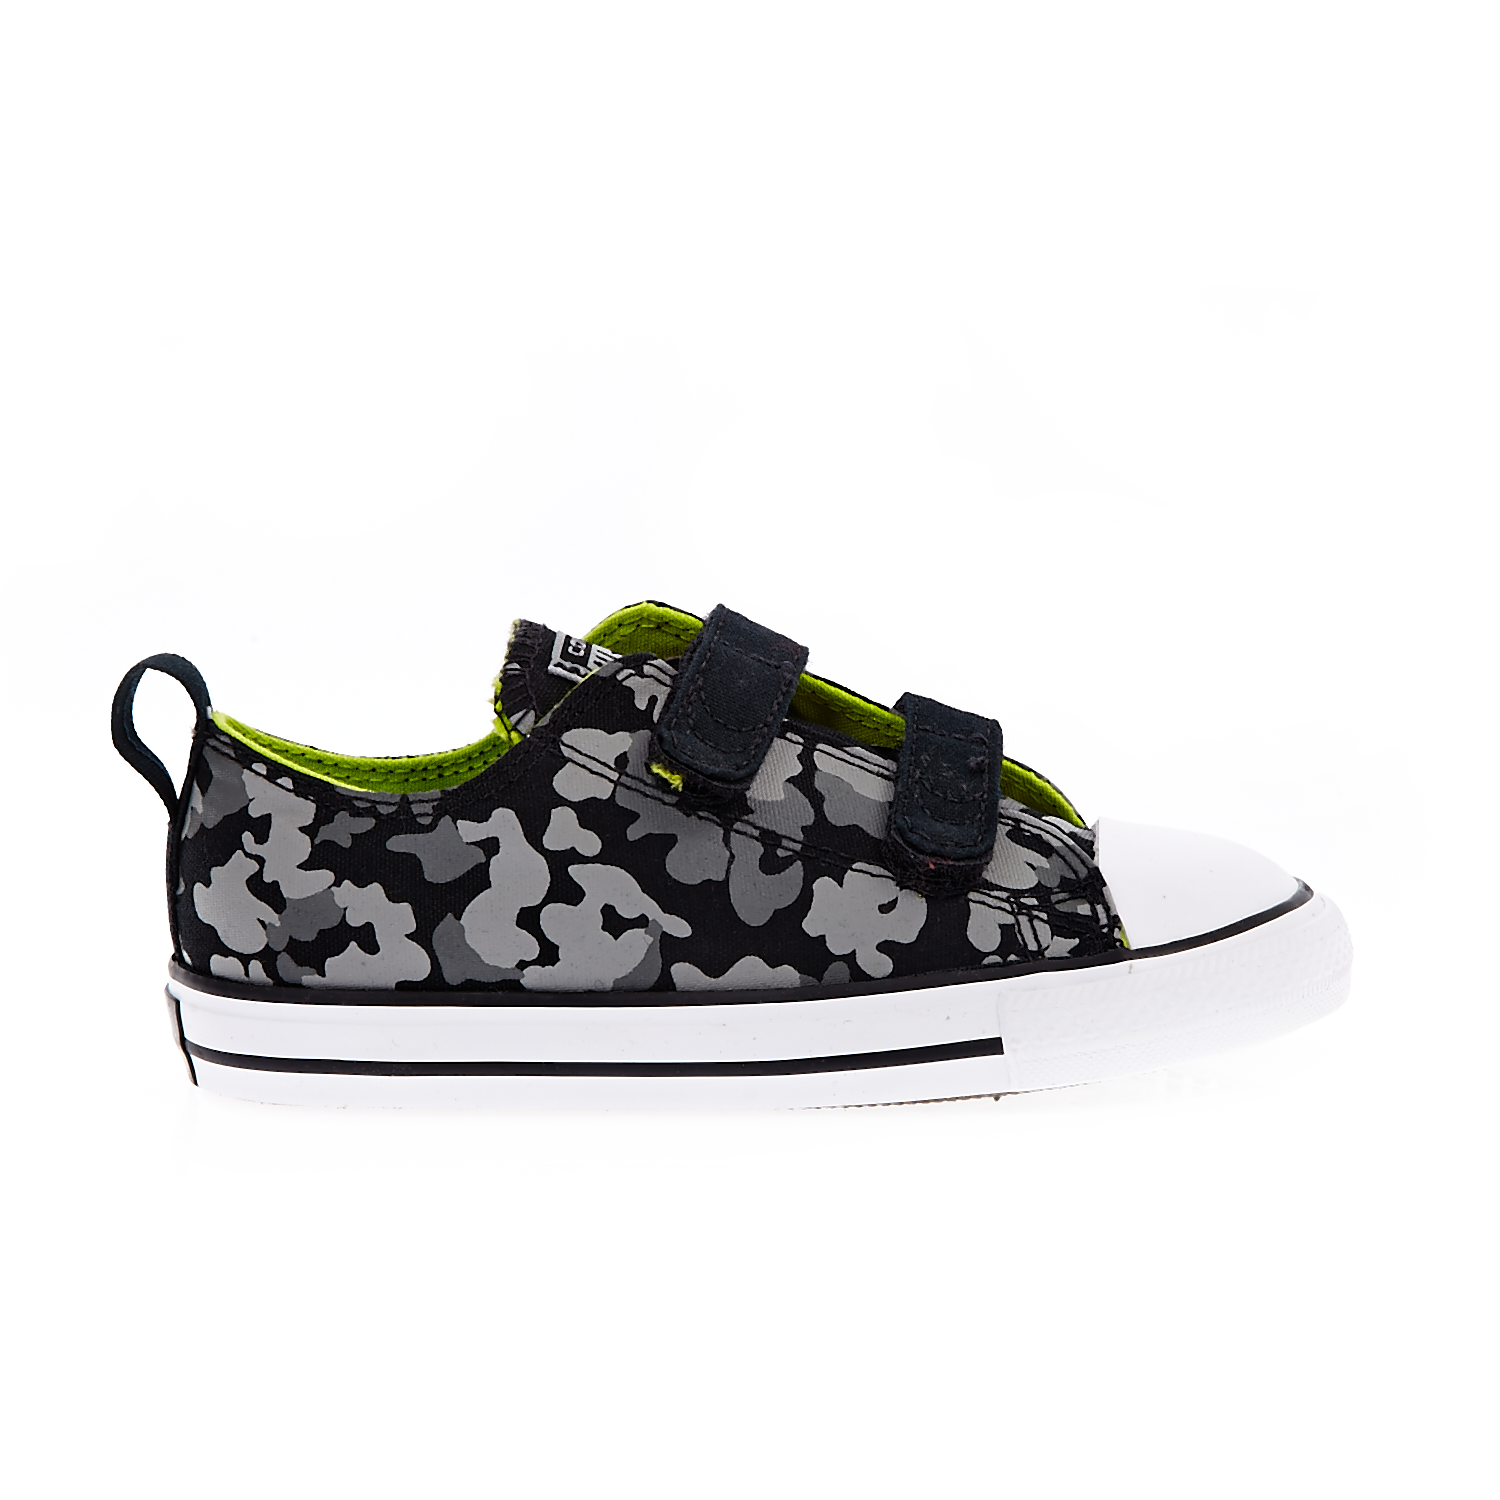 CONVERSE – Βρεφικά παπούτσια Chuck Taylor All Star 2V Ox μαύρα-γκρι